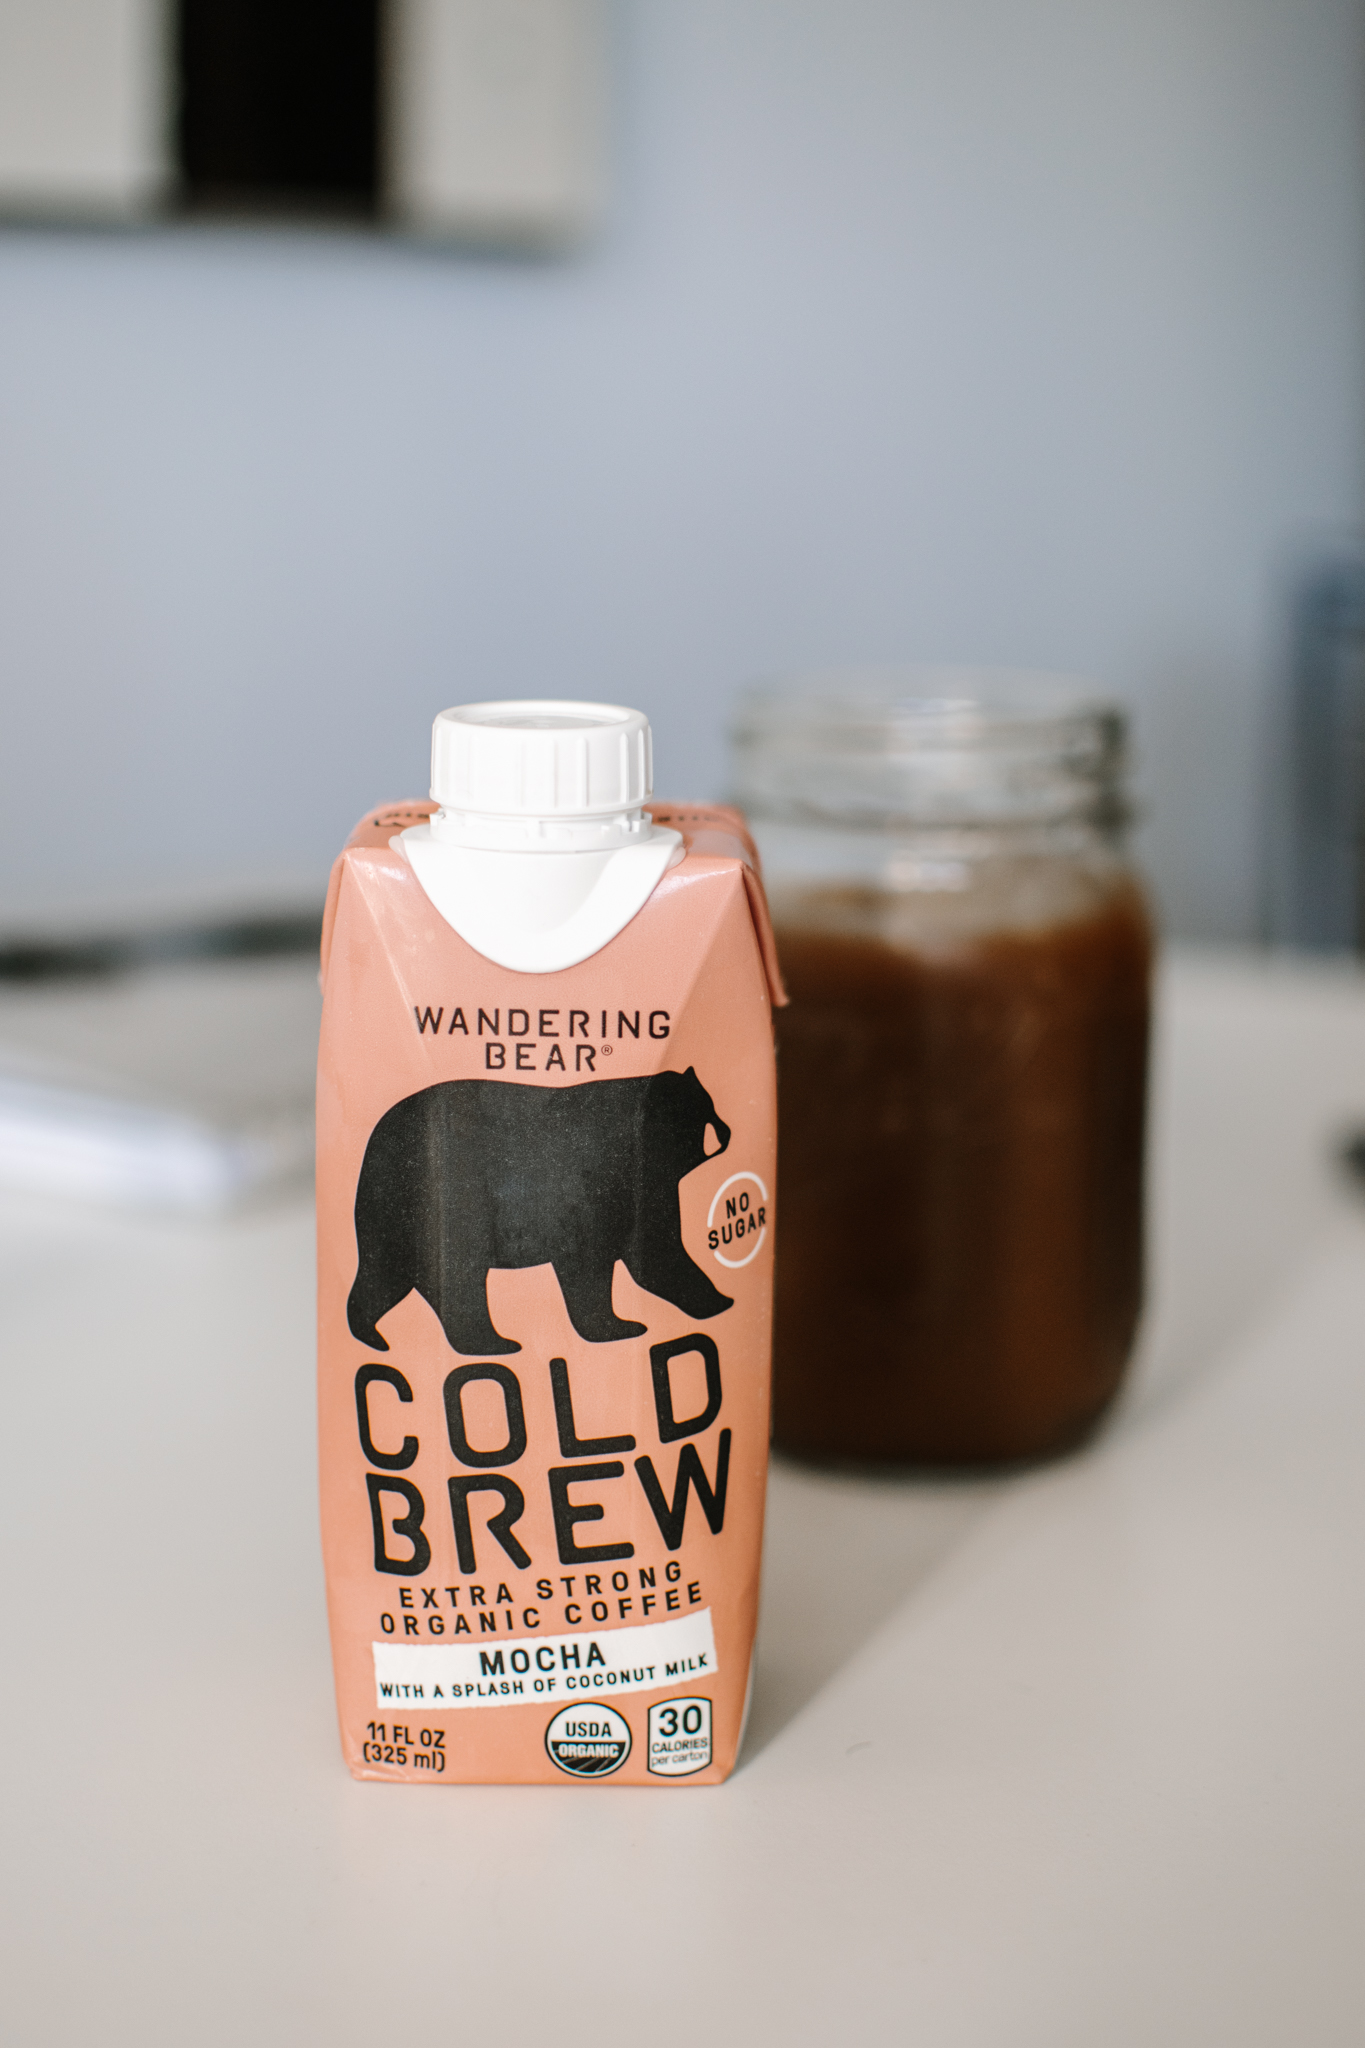 wandering bear coffee review - wandering bear cold brew review